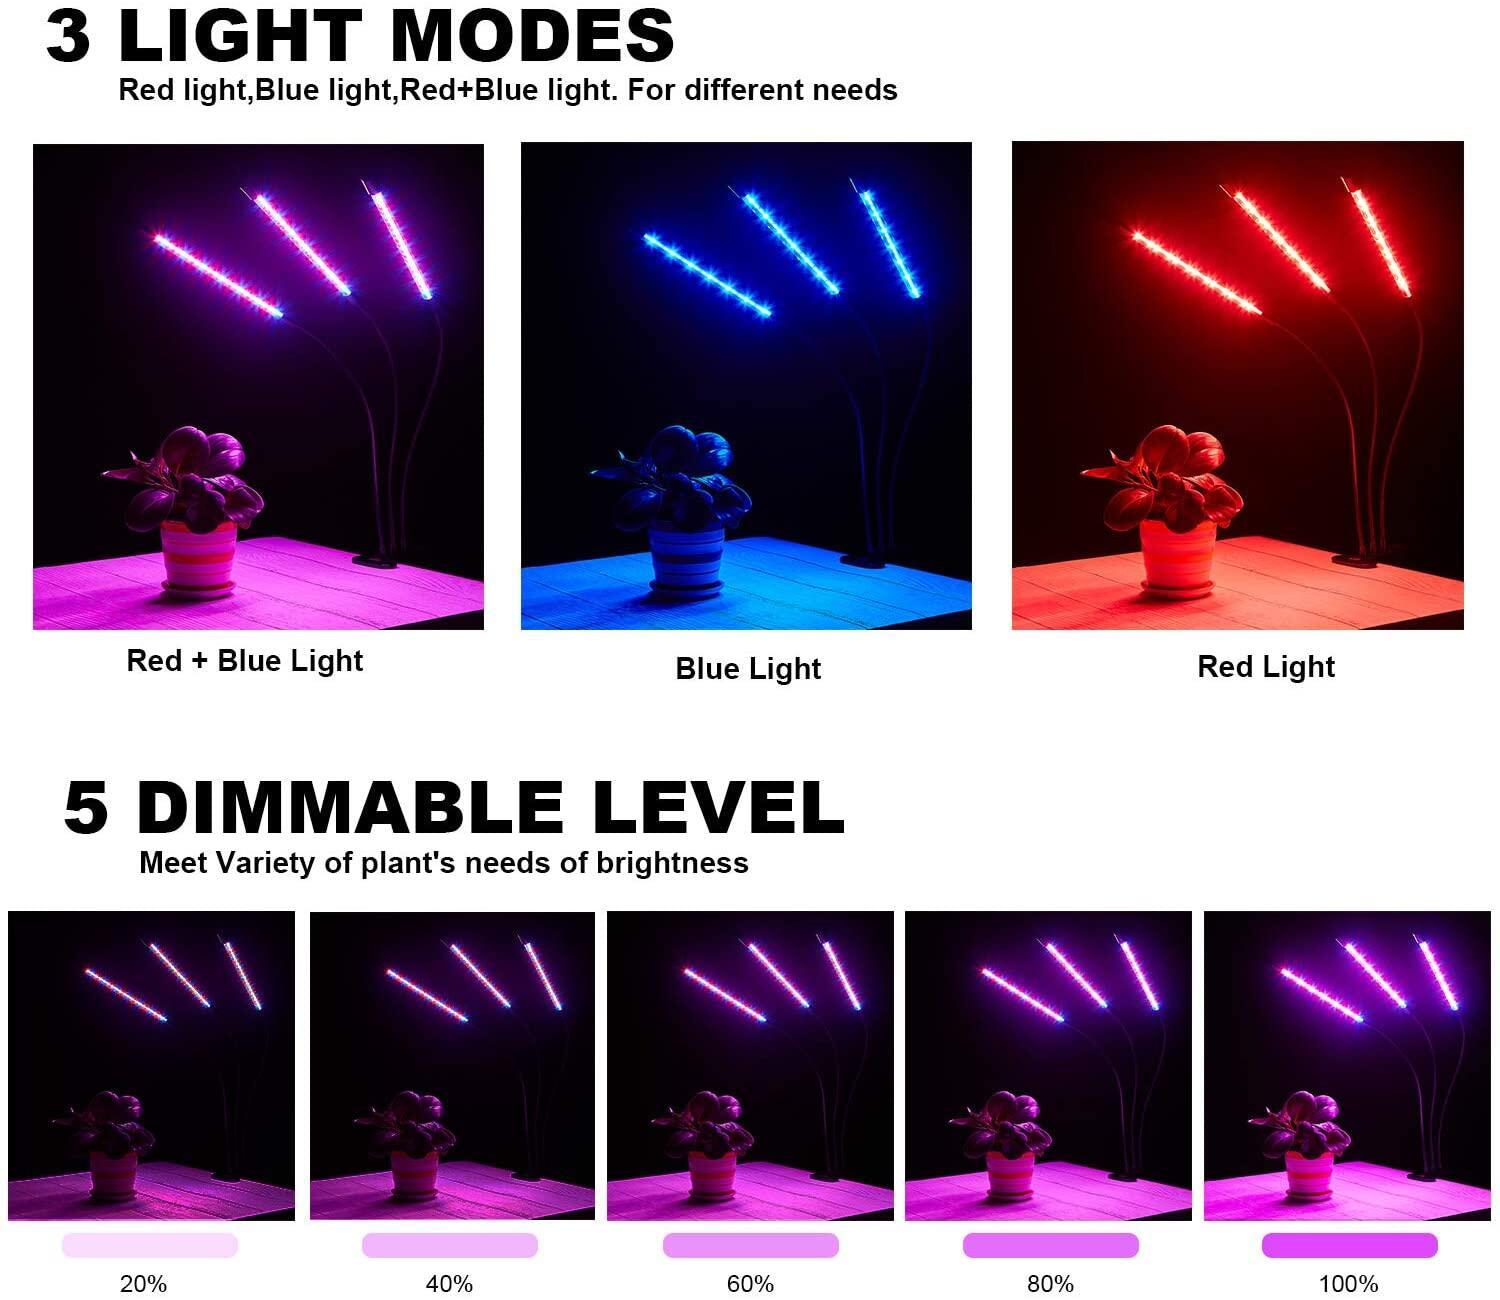 LED Grow Light, 30W, Auto Power On/Off Function, 60 LED Full Spectrum Grow Plant Lamp with 3 Timer Function, 3 Mode, 4 Brightness, with USB Adapter for Garden Indoor PlantsJS LED Grow Light, LED Plant Grow Light at smart-join.comled grow light